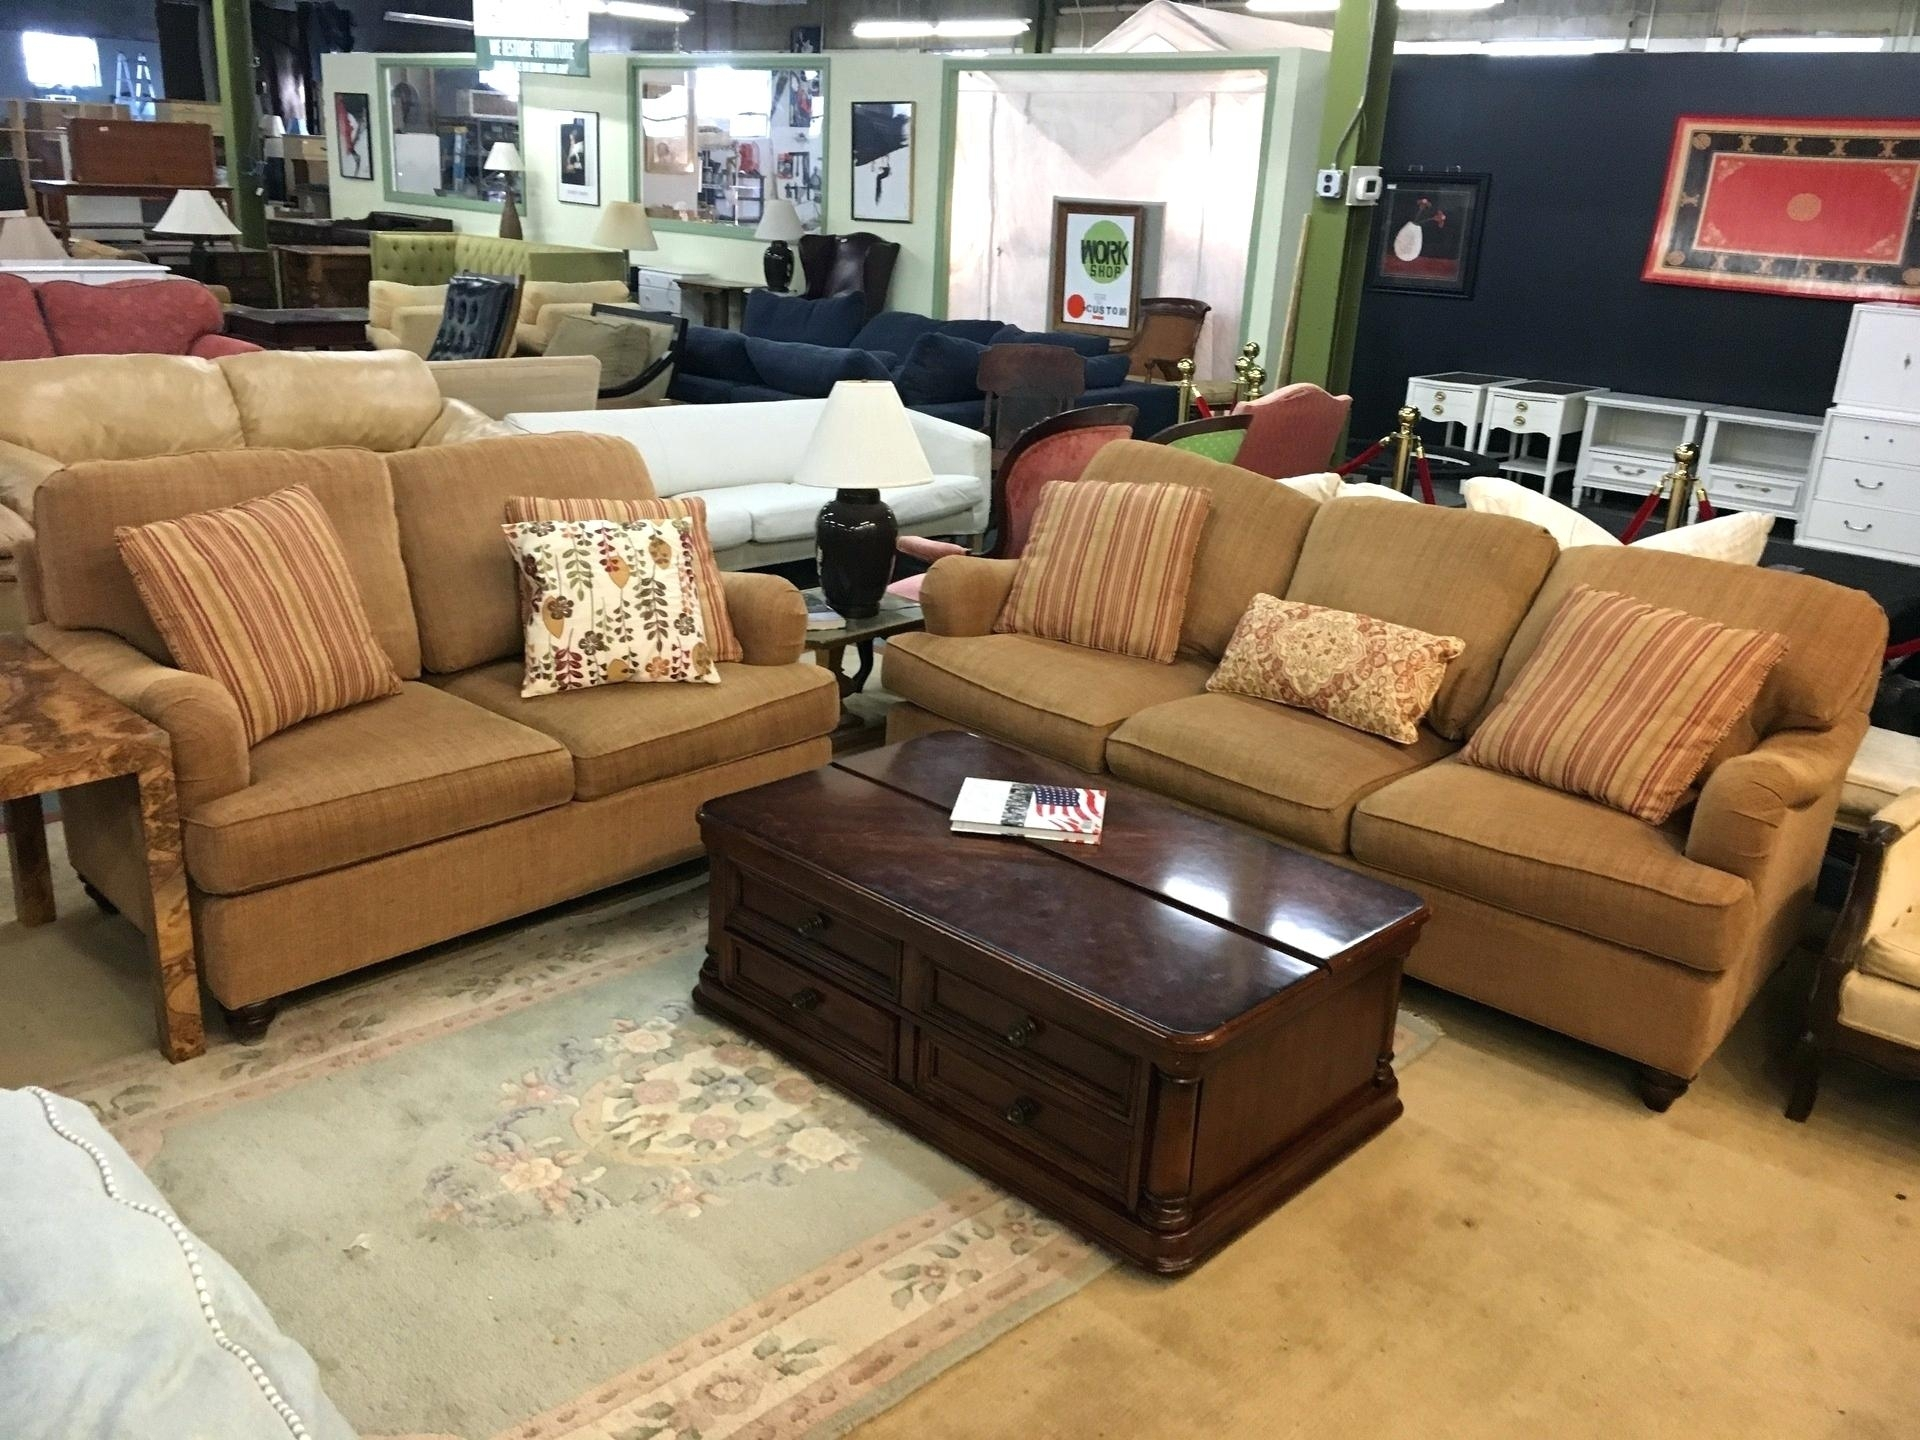 Bassett Couch Sofa Warranty Sectional Bed Vaughan Furniture For Sale inside Vaughan Sectional Sofas (Image 1 of 10)